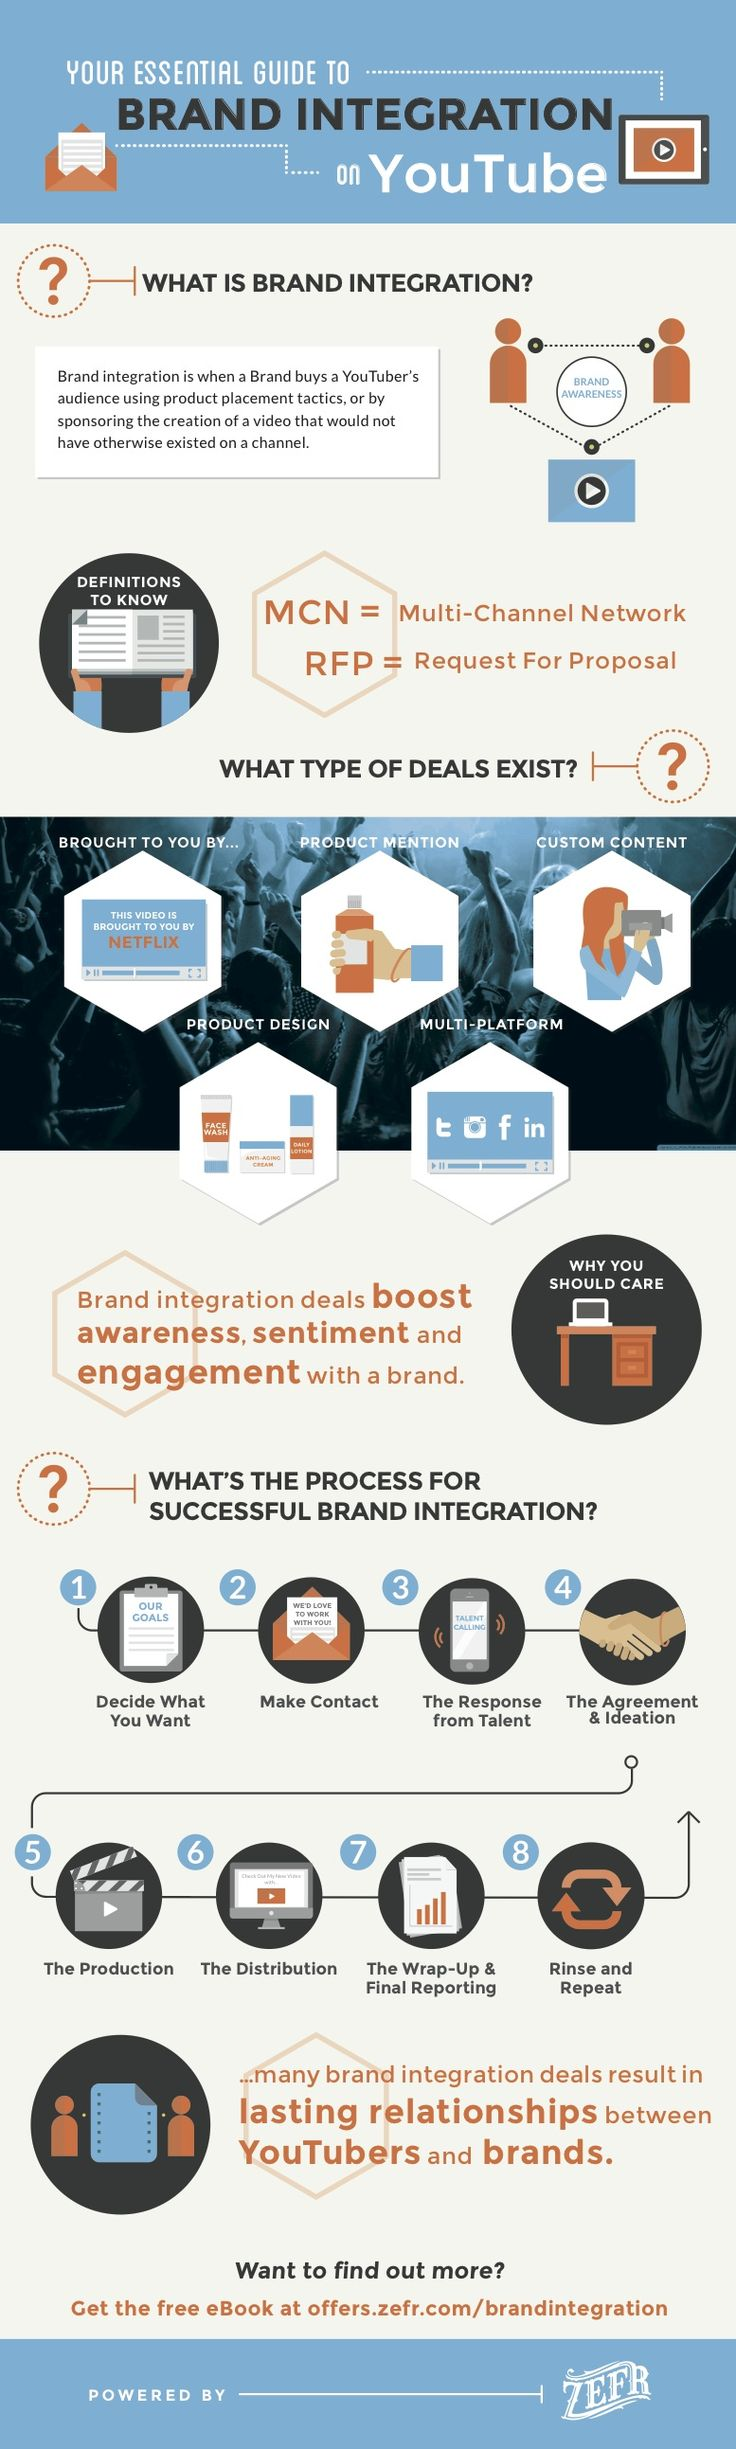 166 best interesting infographics images on pinterest digital your essential guide to brand integration on youtube infographic fandeluxe Epub